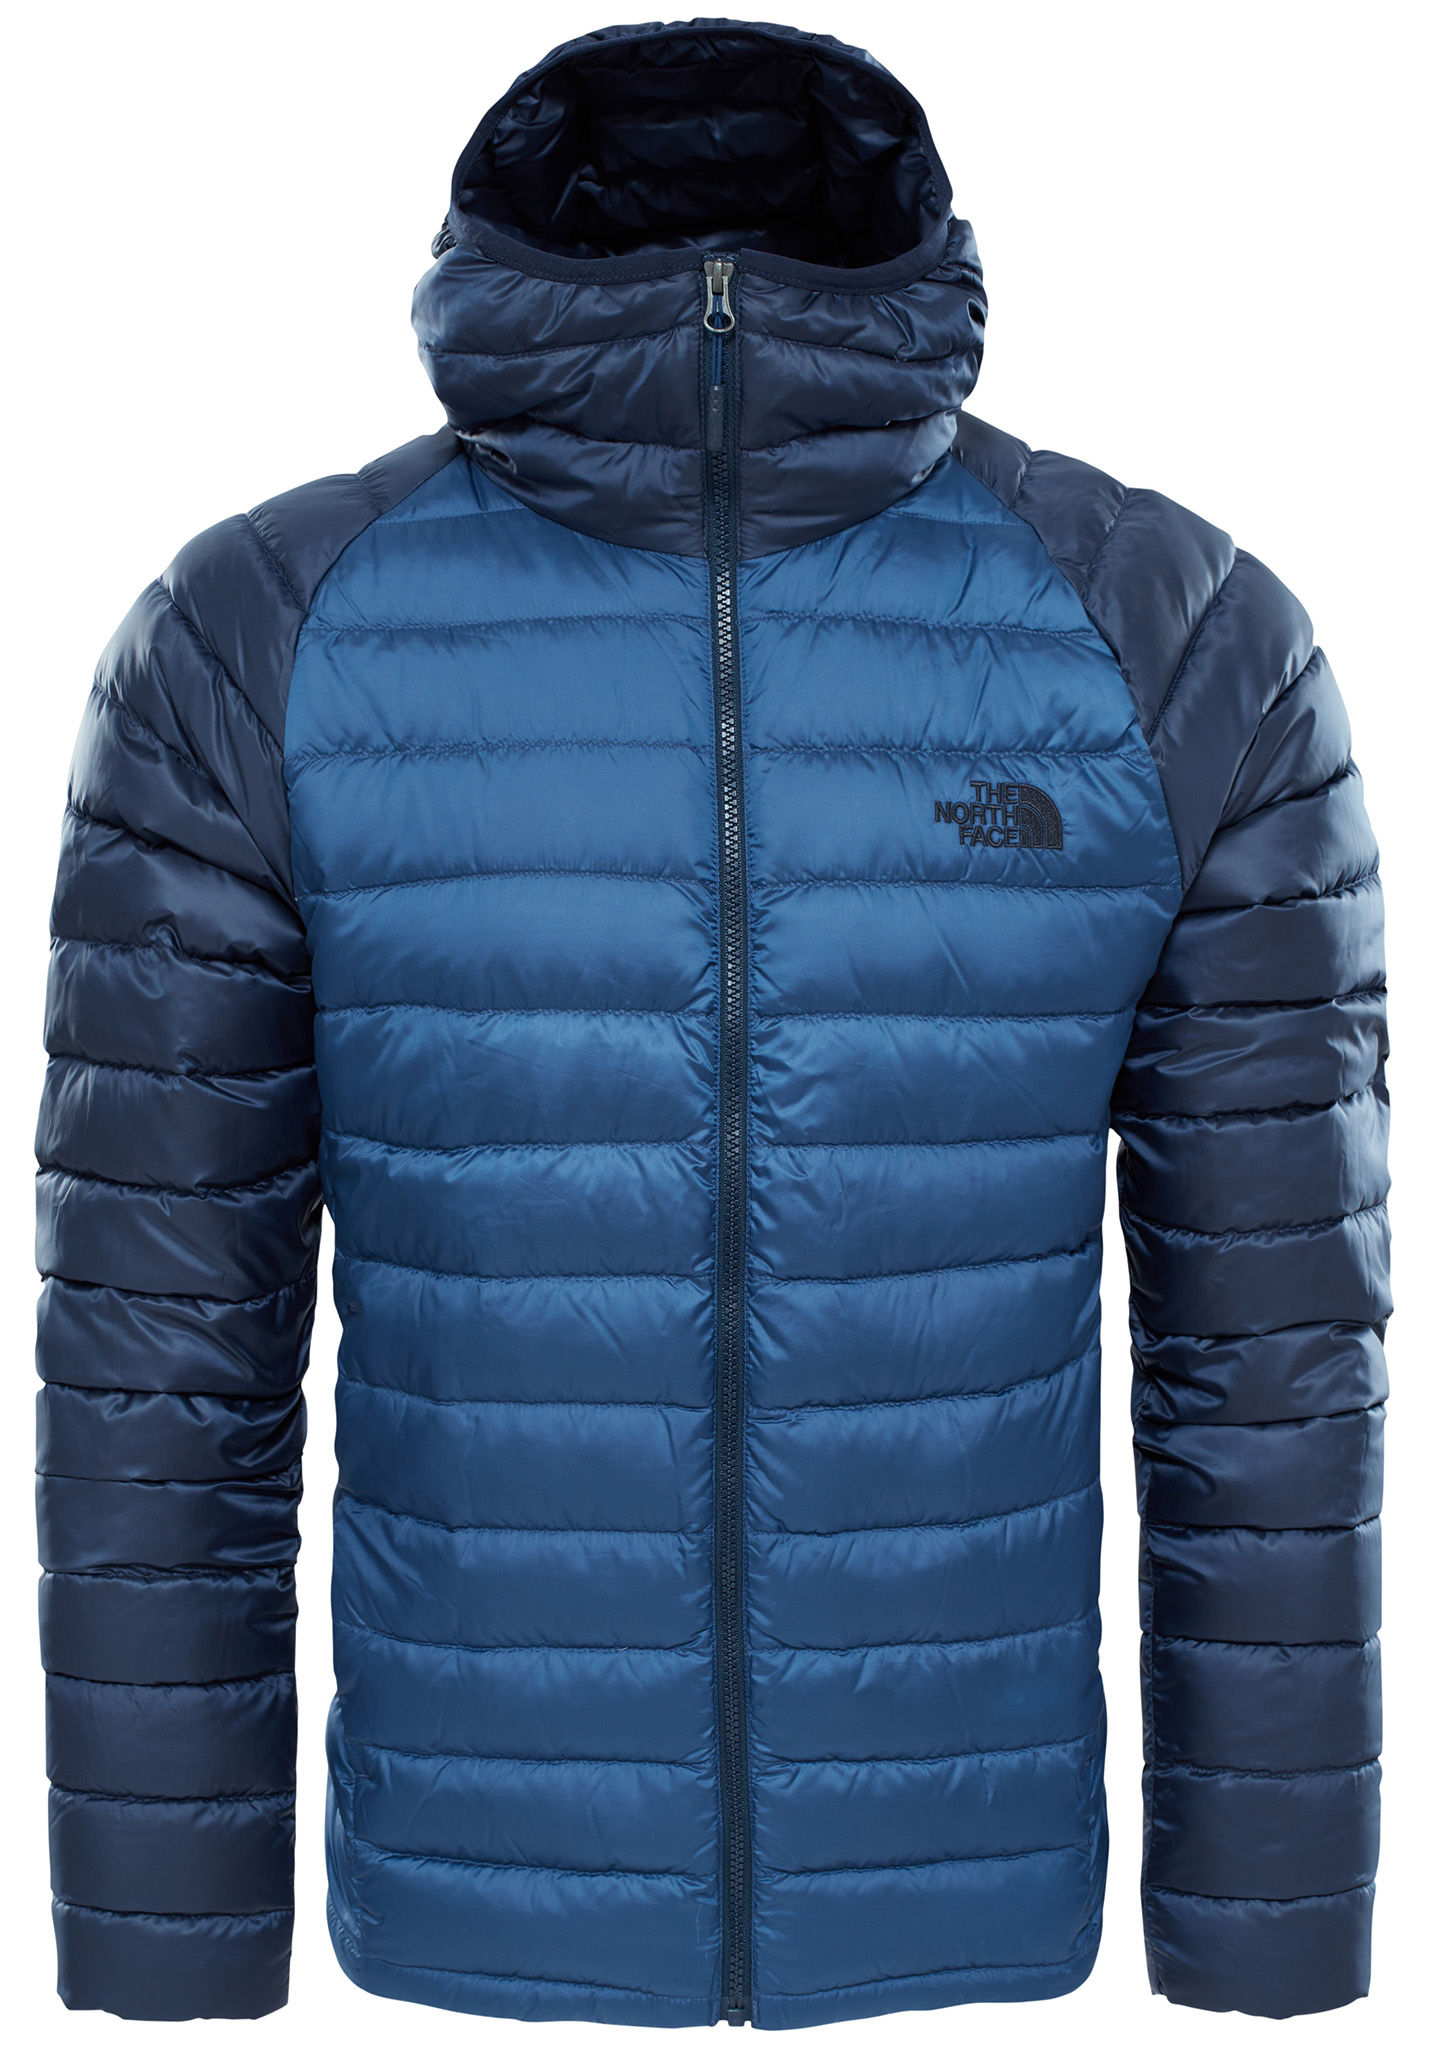 doudoune north face bleu